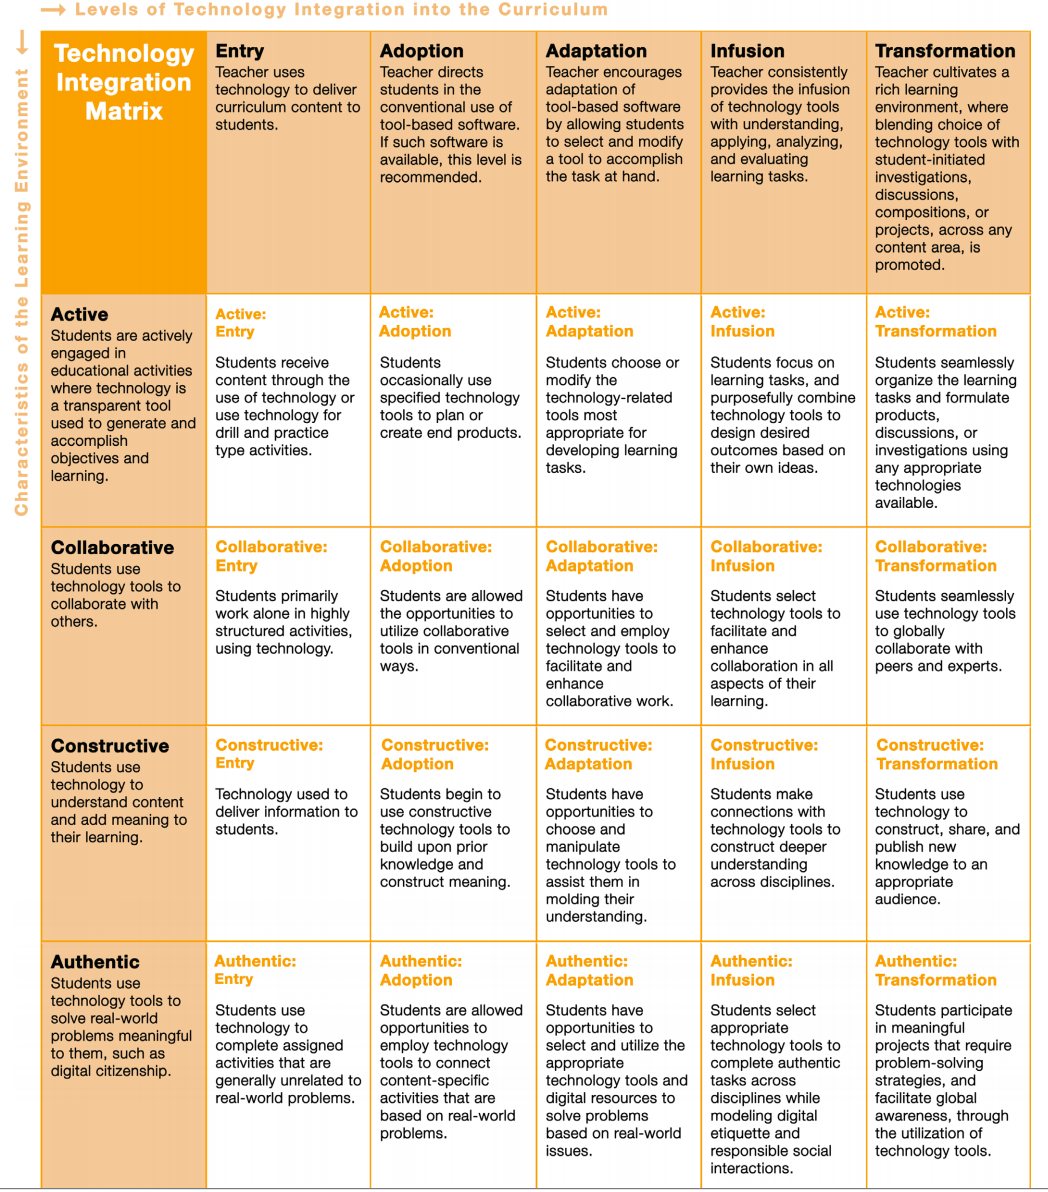 A Great New Technology Integration Matrix for Teachers ...